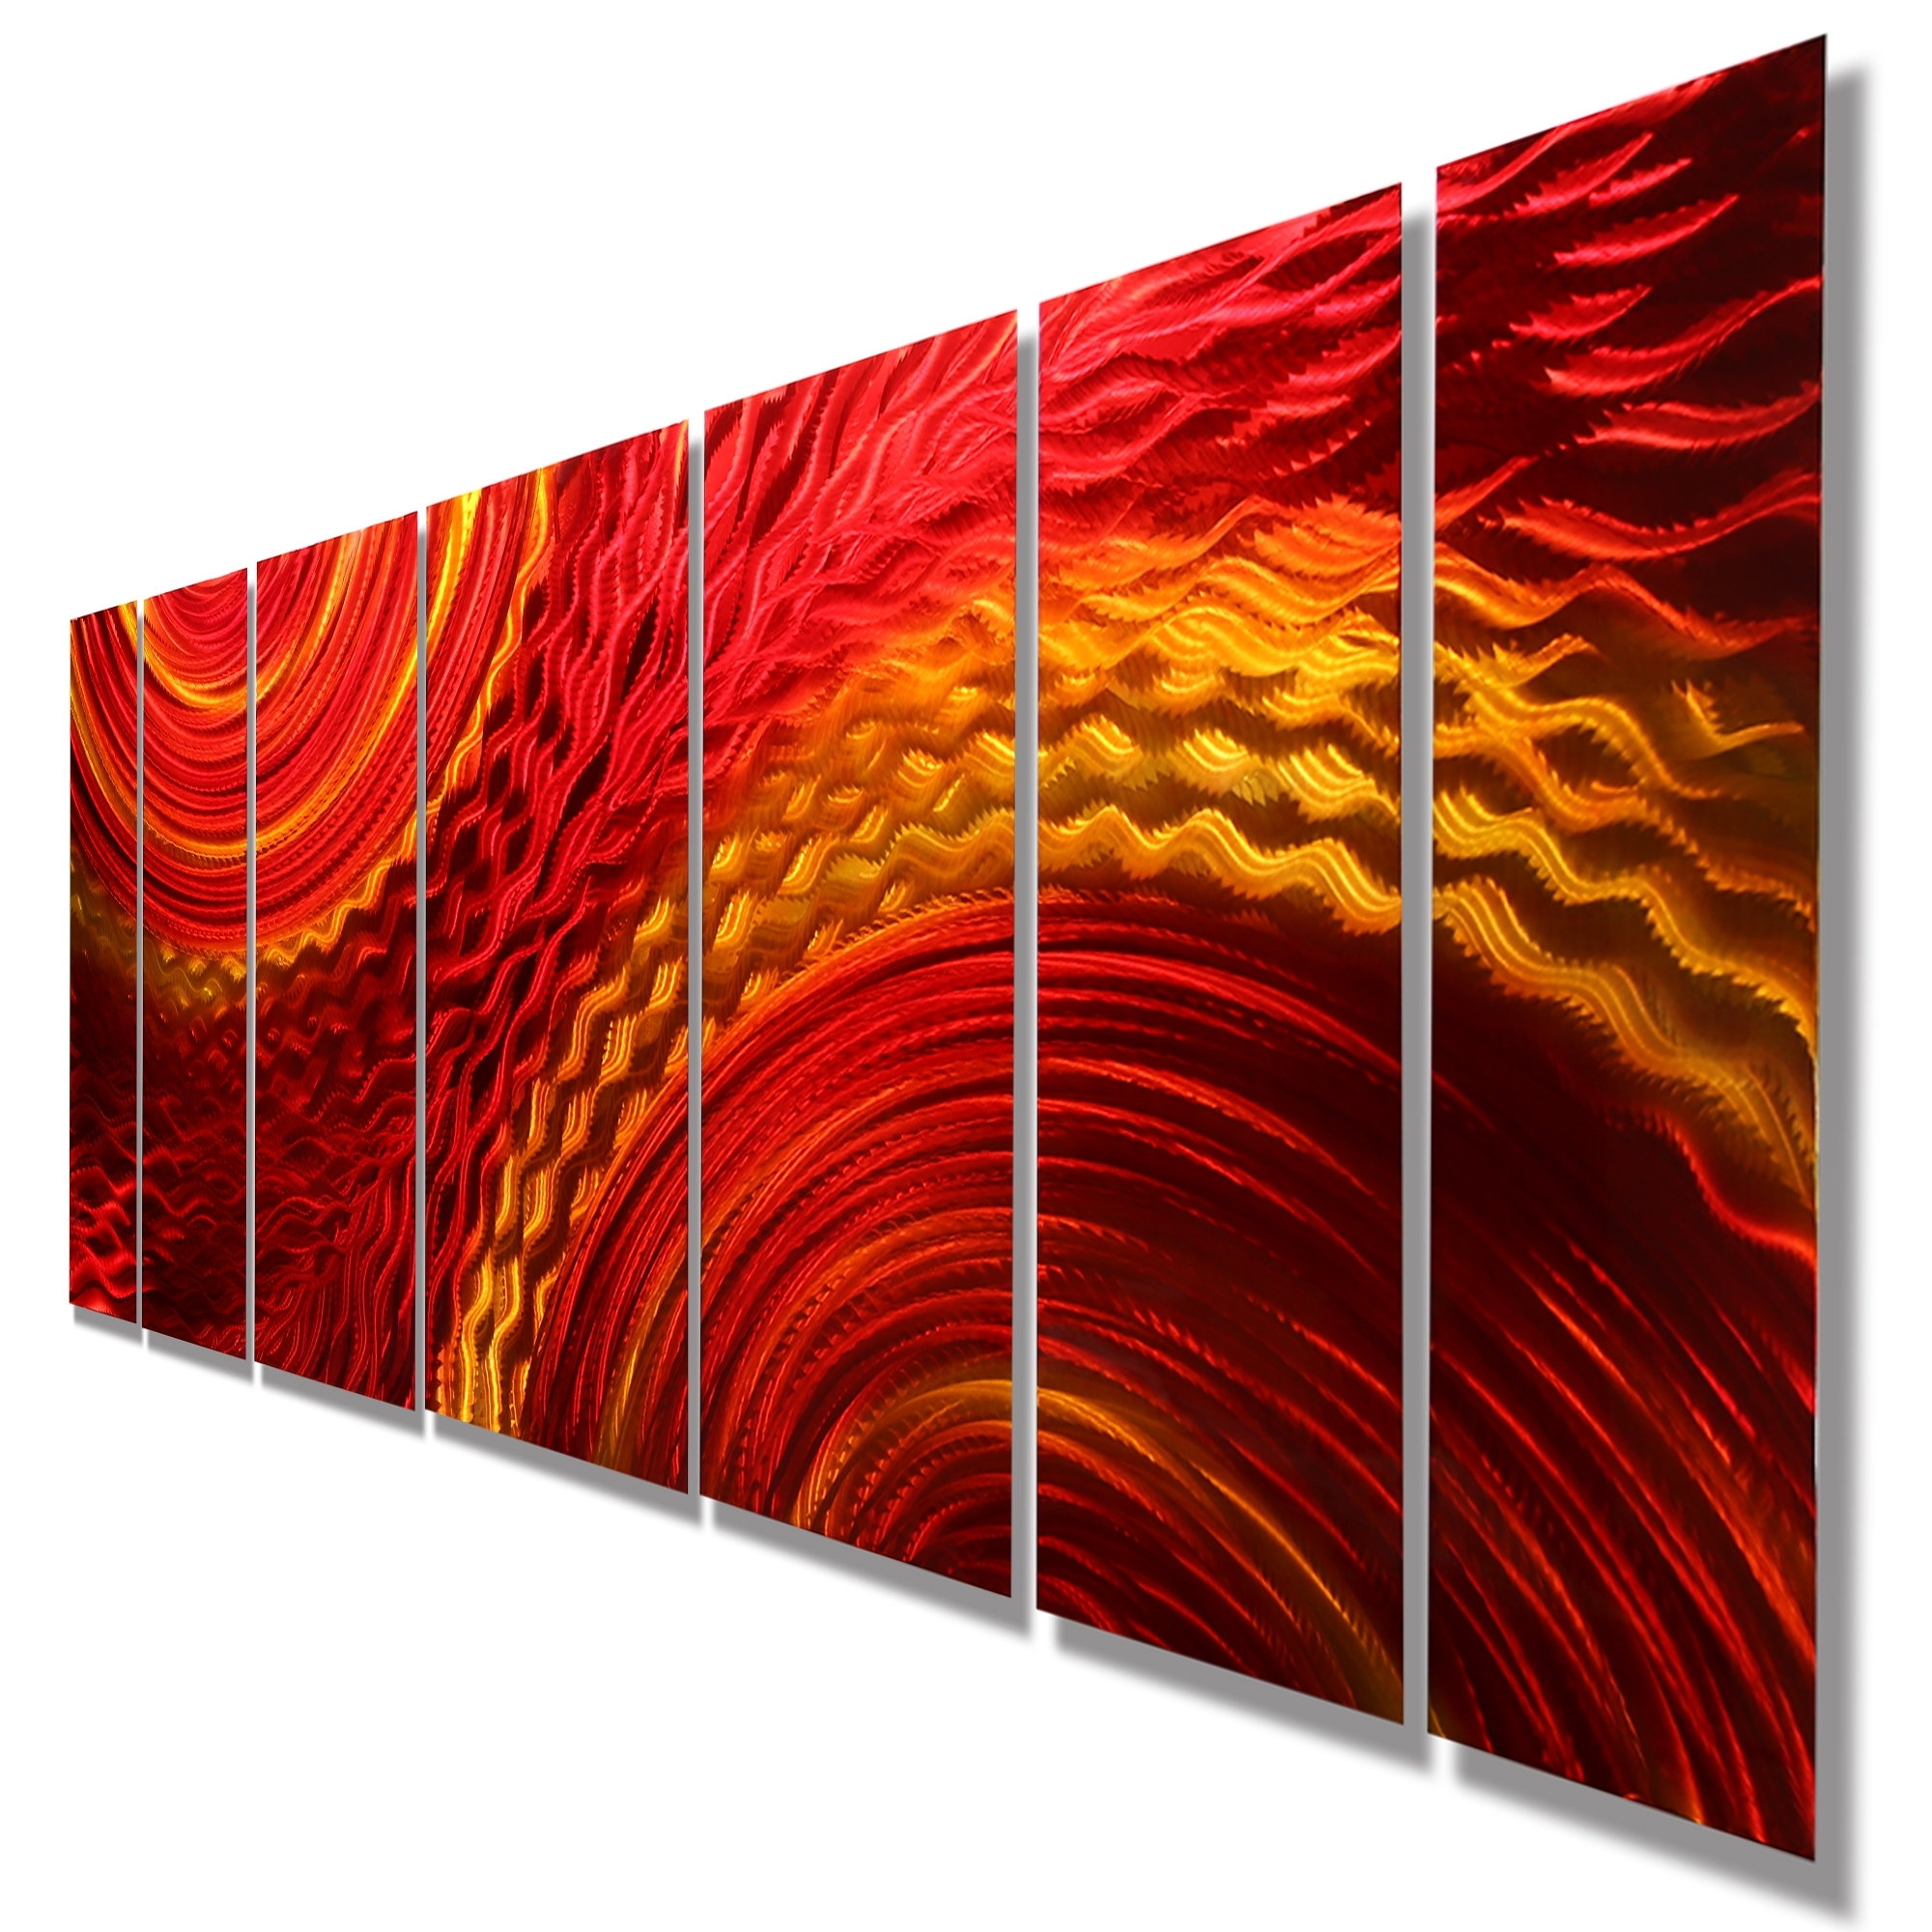 Home Decor: Alluring Abstract Metal Wall Art With Harvest Moods Xl Within Latest Abstract Metal Wall Art Australia (Gallery 1 of 20)